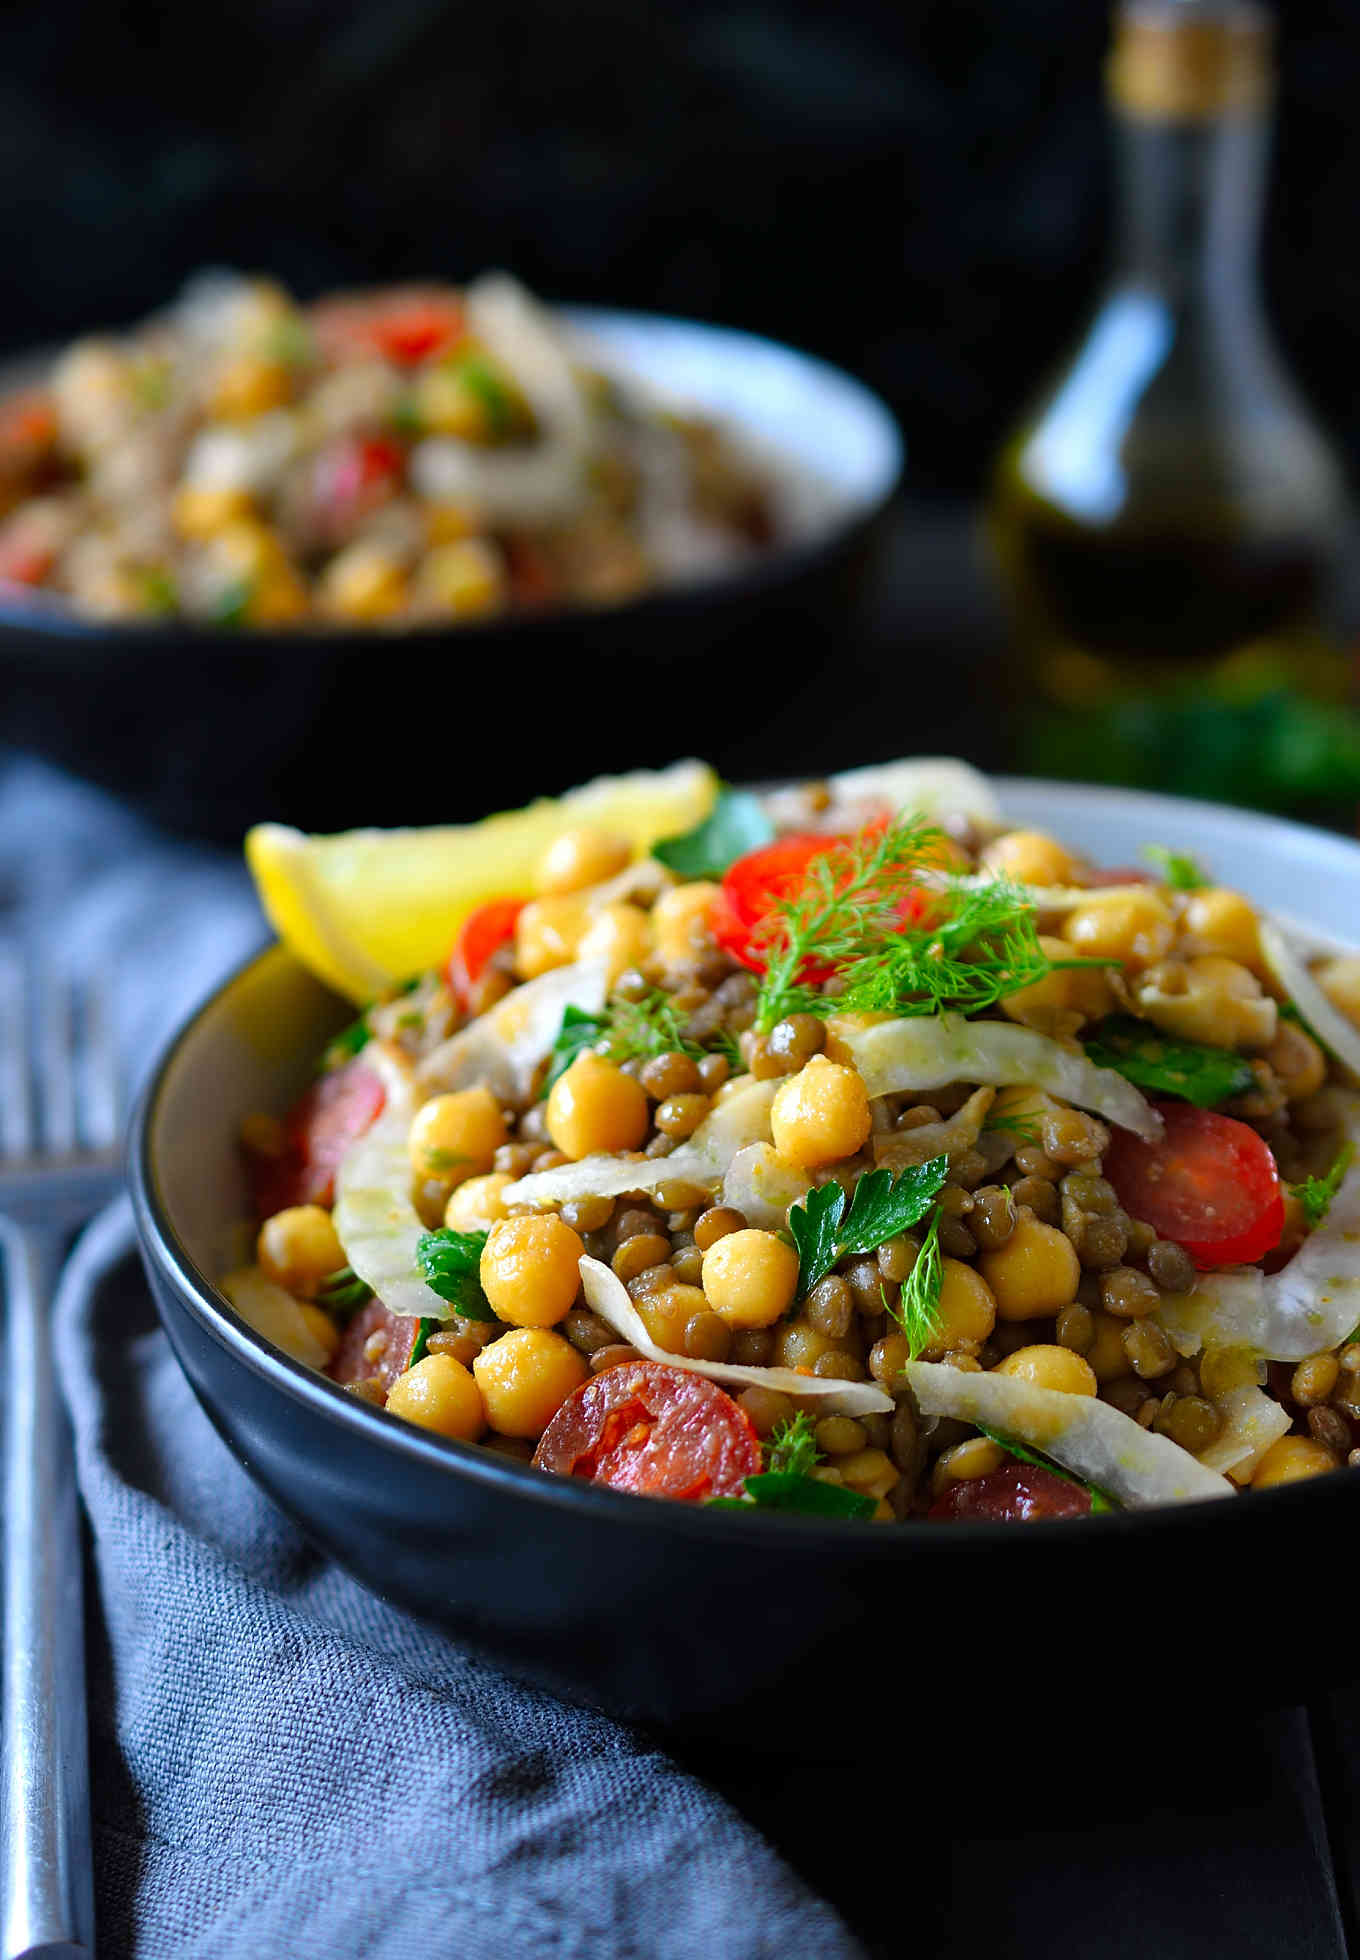 This bean and lentil salad recipe features chickpeas and lentils tossed with sliced tomato, fennel and herbs in a simple yet flavourful coriander-cumin lemony dressing. It's easy to put together and keeps well in the fridge for later. Serve this delicious salad as a side or hearty main dish, take it to a potluck, BBQ or picnic.